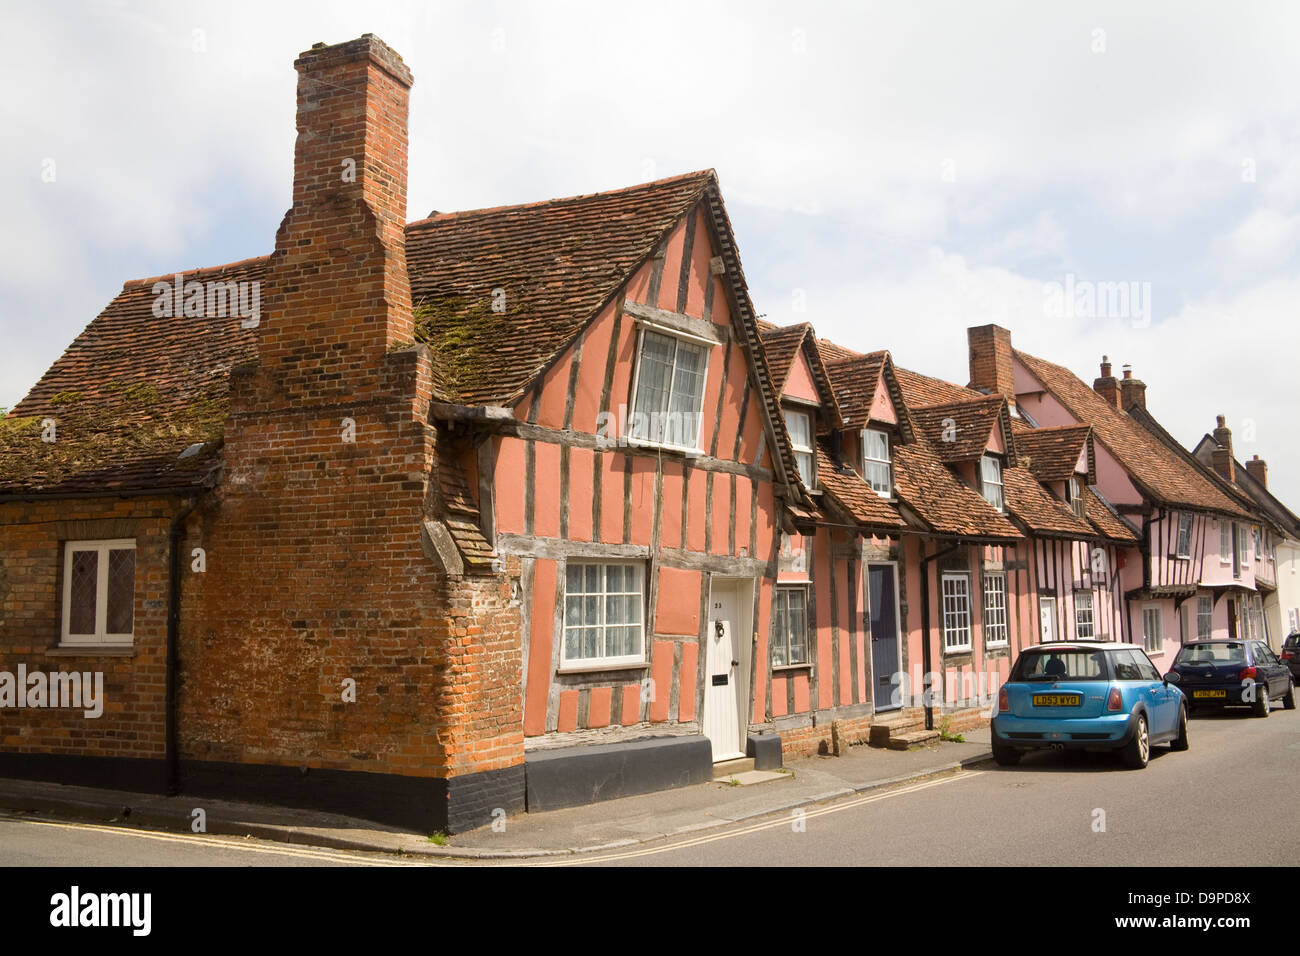 Lavenham Suffolk East Anglia England Pastel coloured half timbered houses in  medieval village one of 20th wealthiest - Stock Image